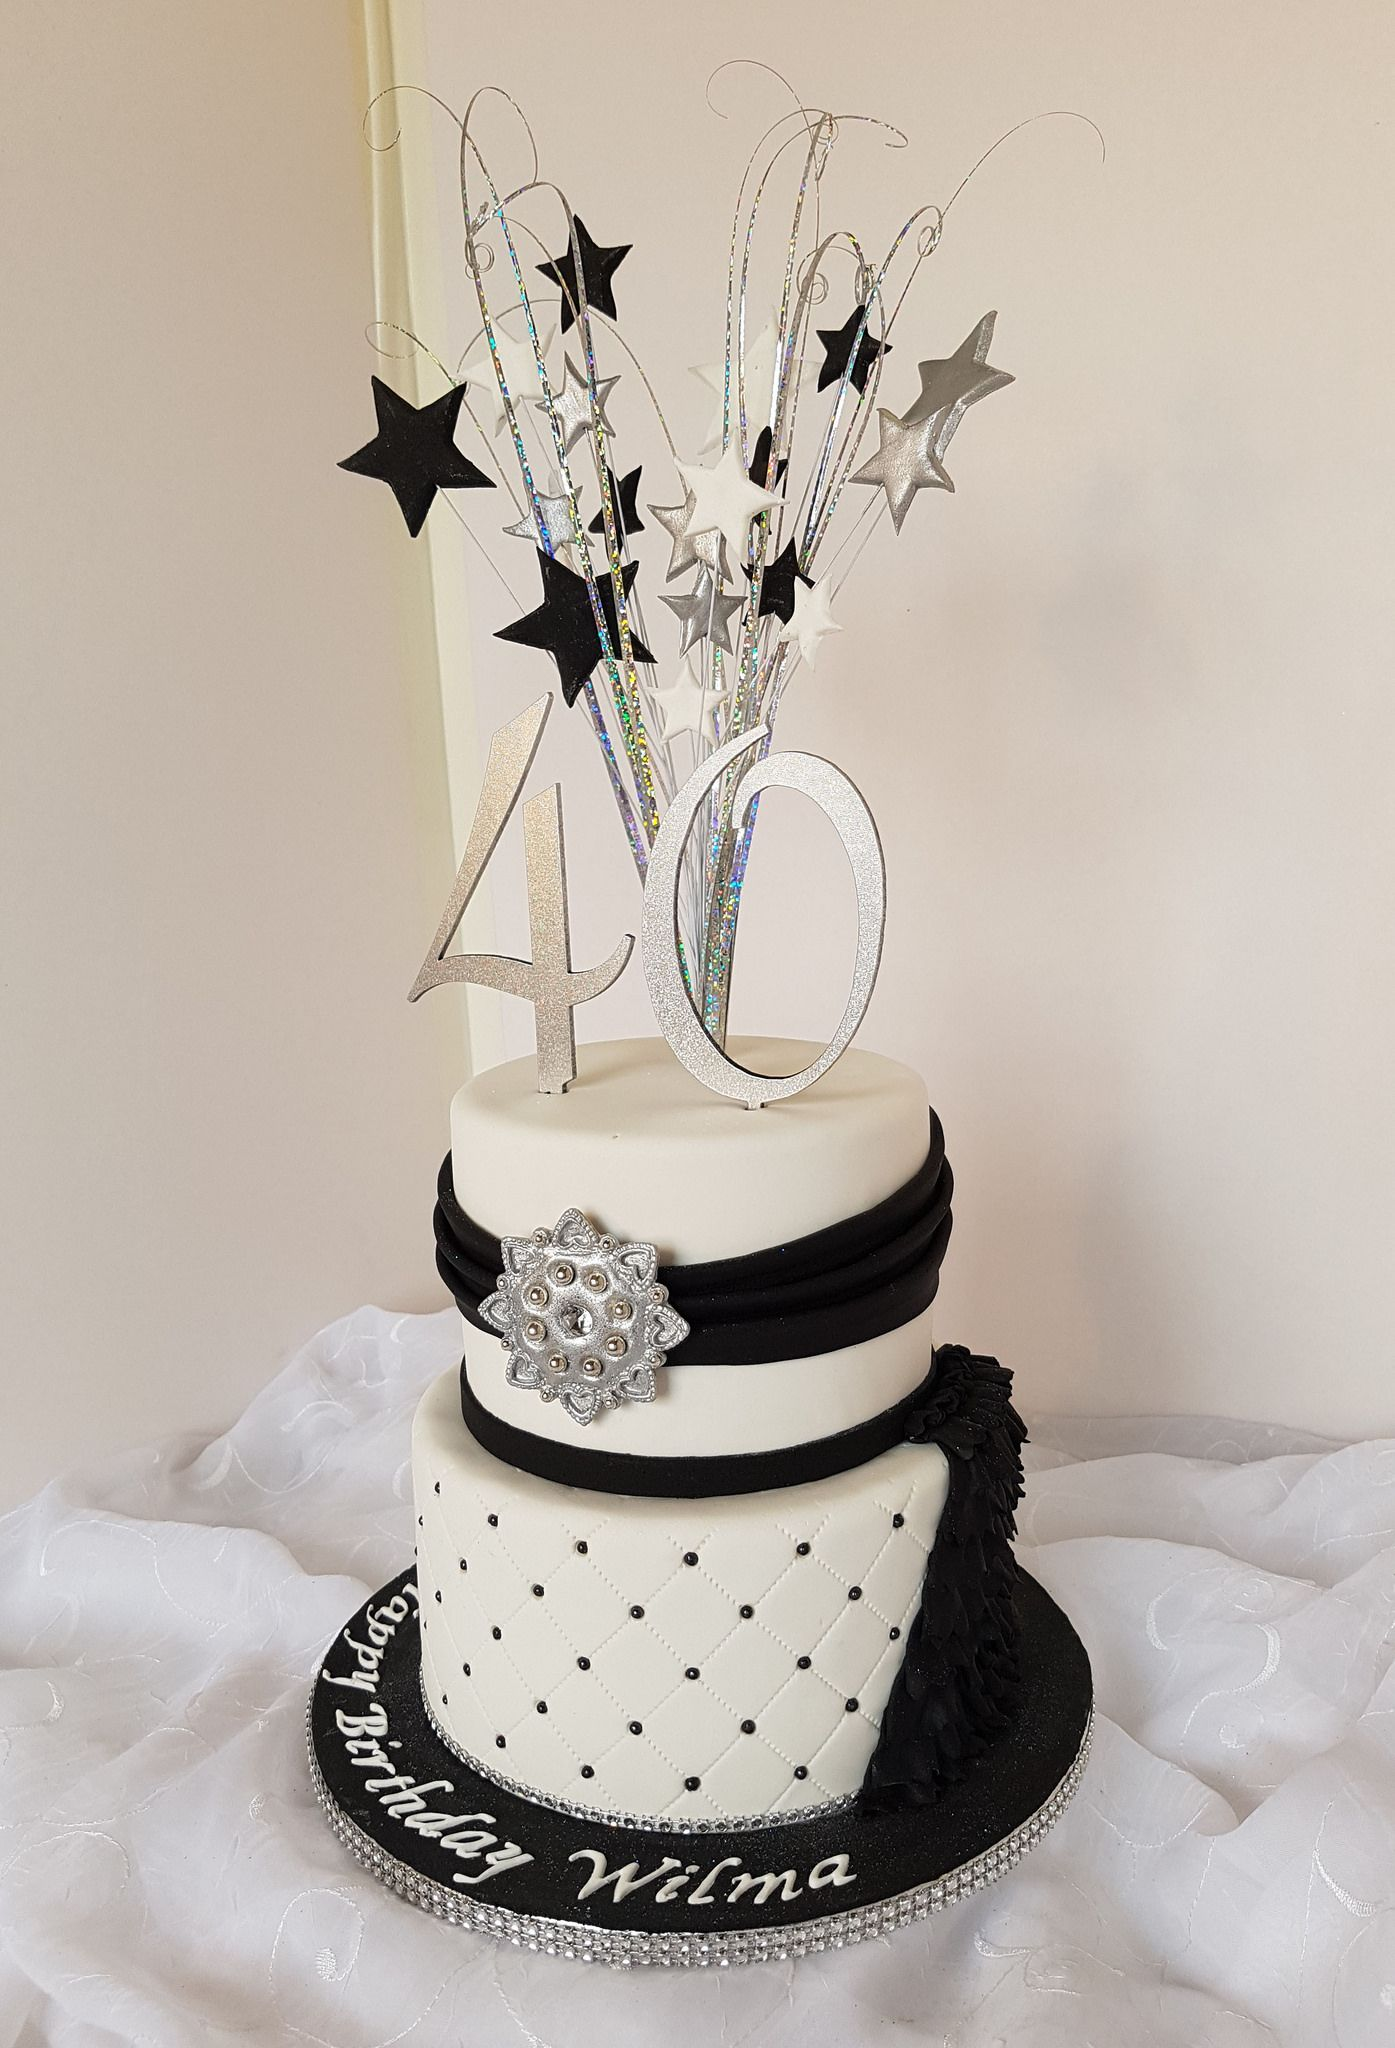 Fancy 40th White Silver And Black Birthday Cake Willi Probst